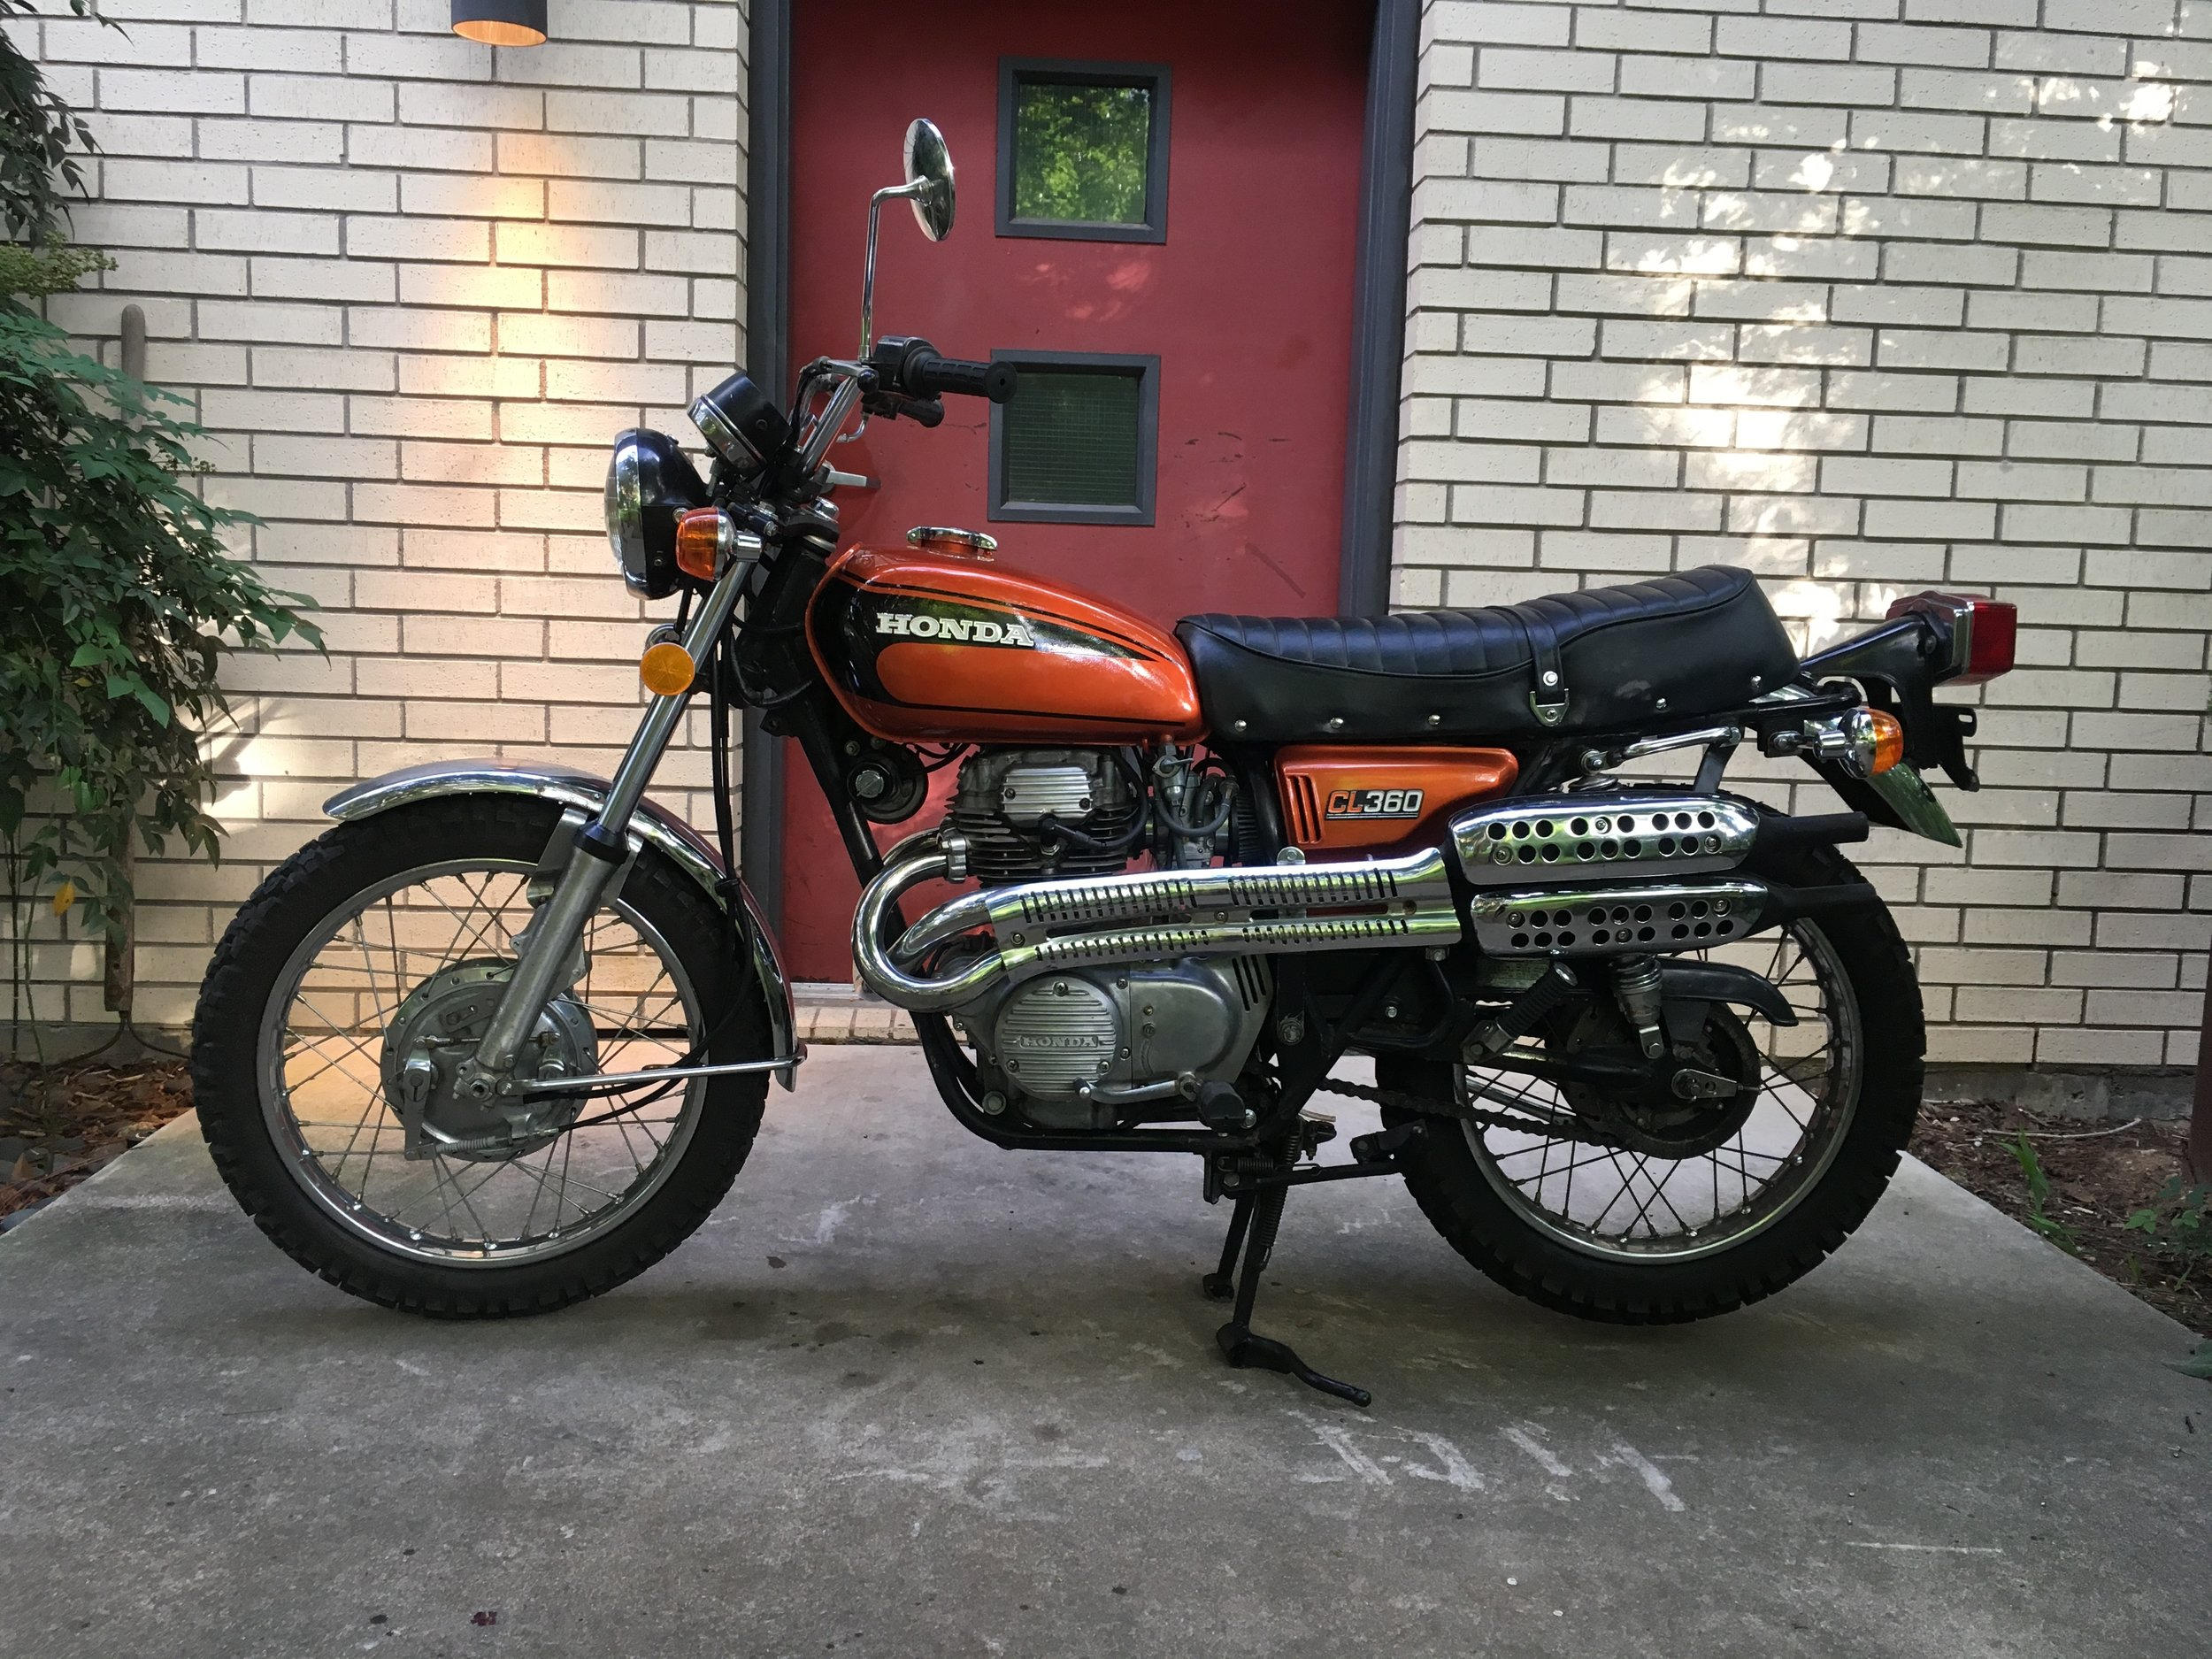 Another familiar bike, this 1974 Honda CL360 came in for a fuel delivery issue and points adjustment, and left running right again.